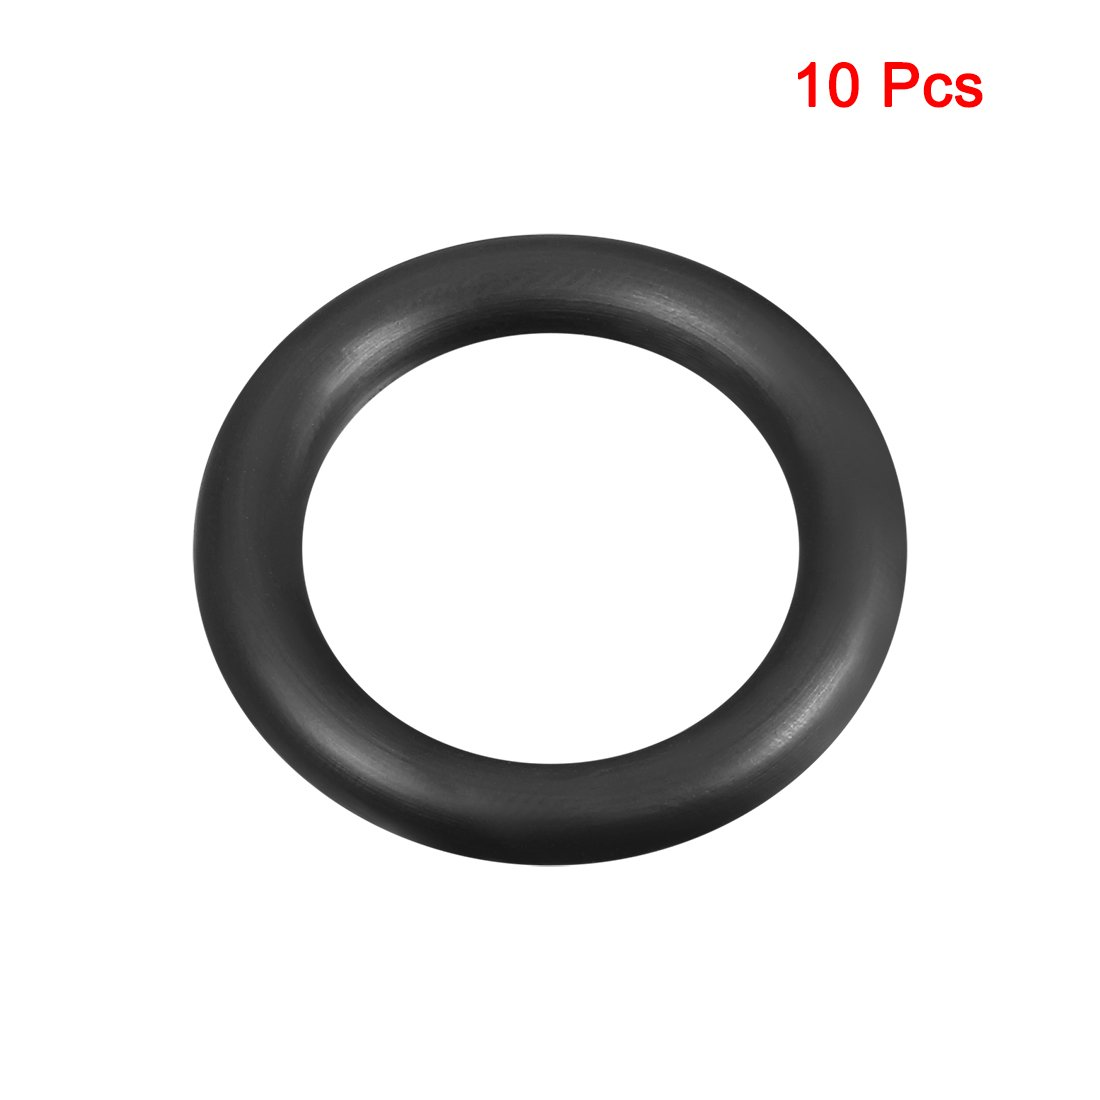 20mm OD 10mm Inner Diameter Pack of 10 5mm Width Round Seal Gasket uxcell O-Rings Nitrile Rubber